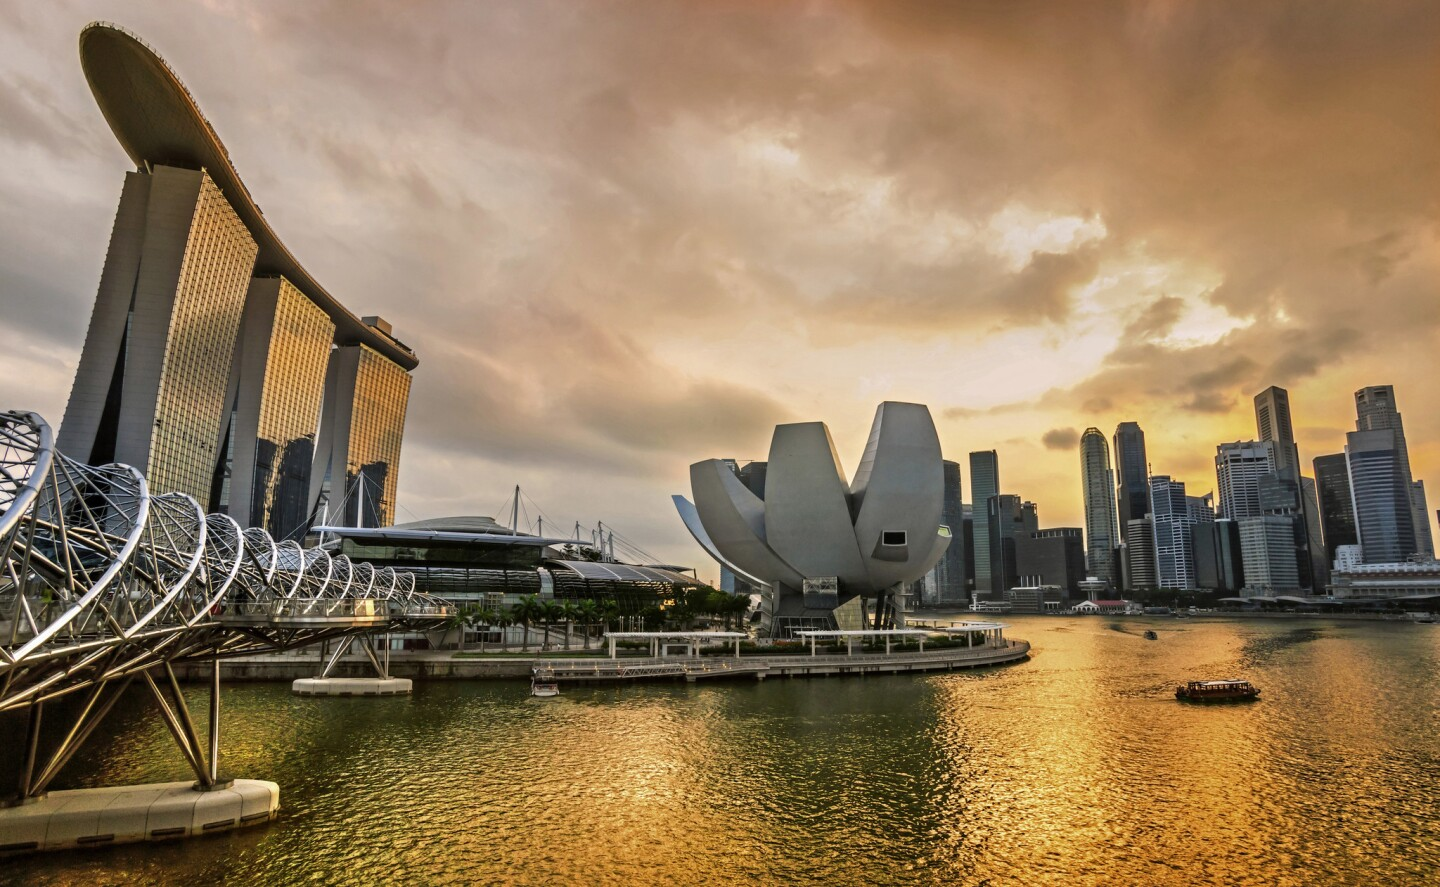 The dramatic Singapore city skyline at sunset, with the striking Marina Bay Sands Hotel to the left, three towers with a Skypark atop them. On Aug. 9, 2015, Singapore celebrates its golden jubilee.